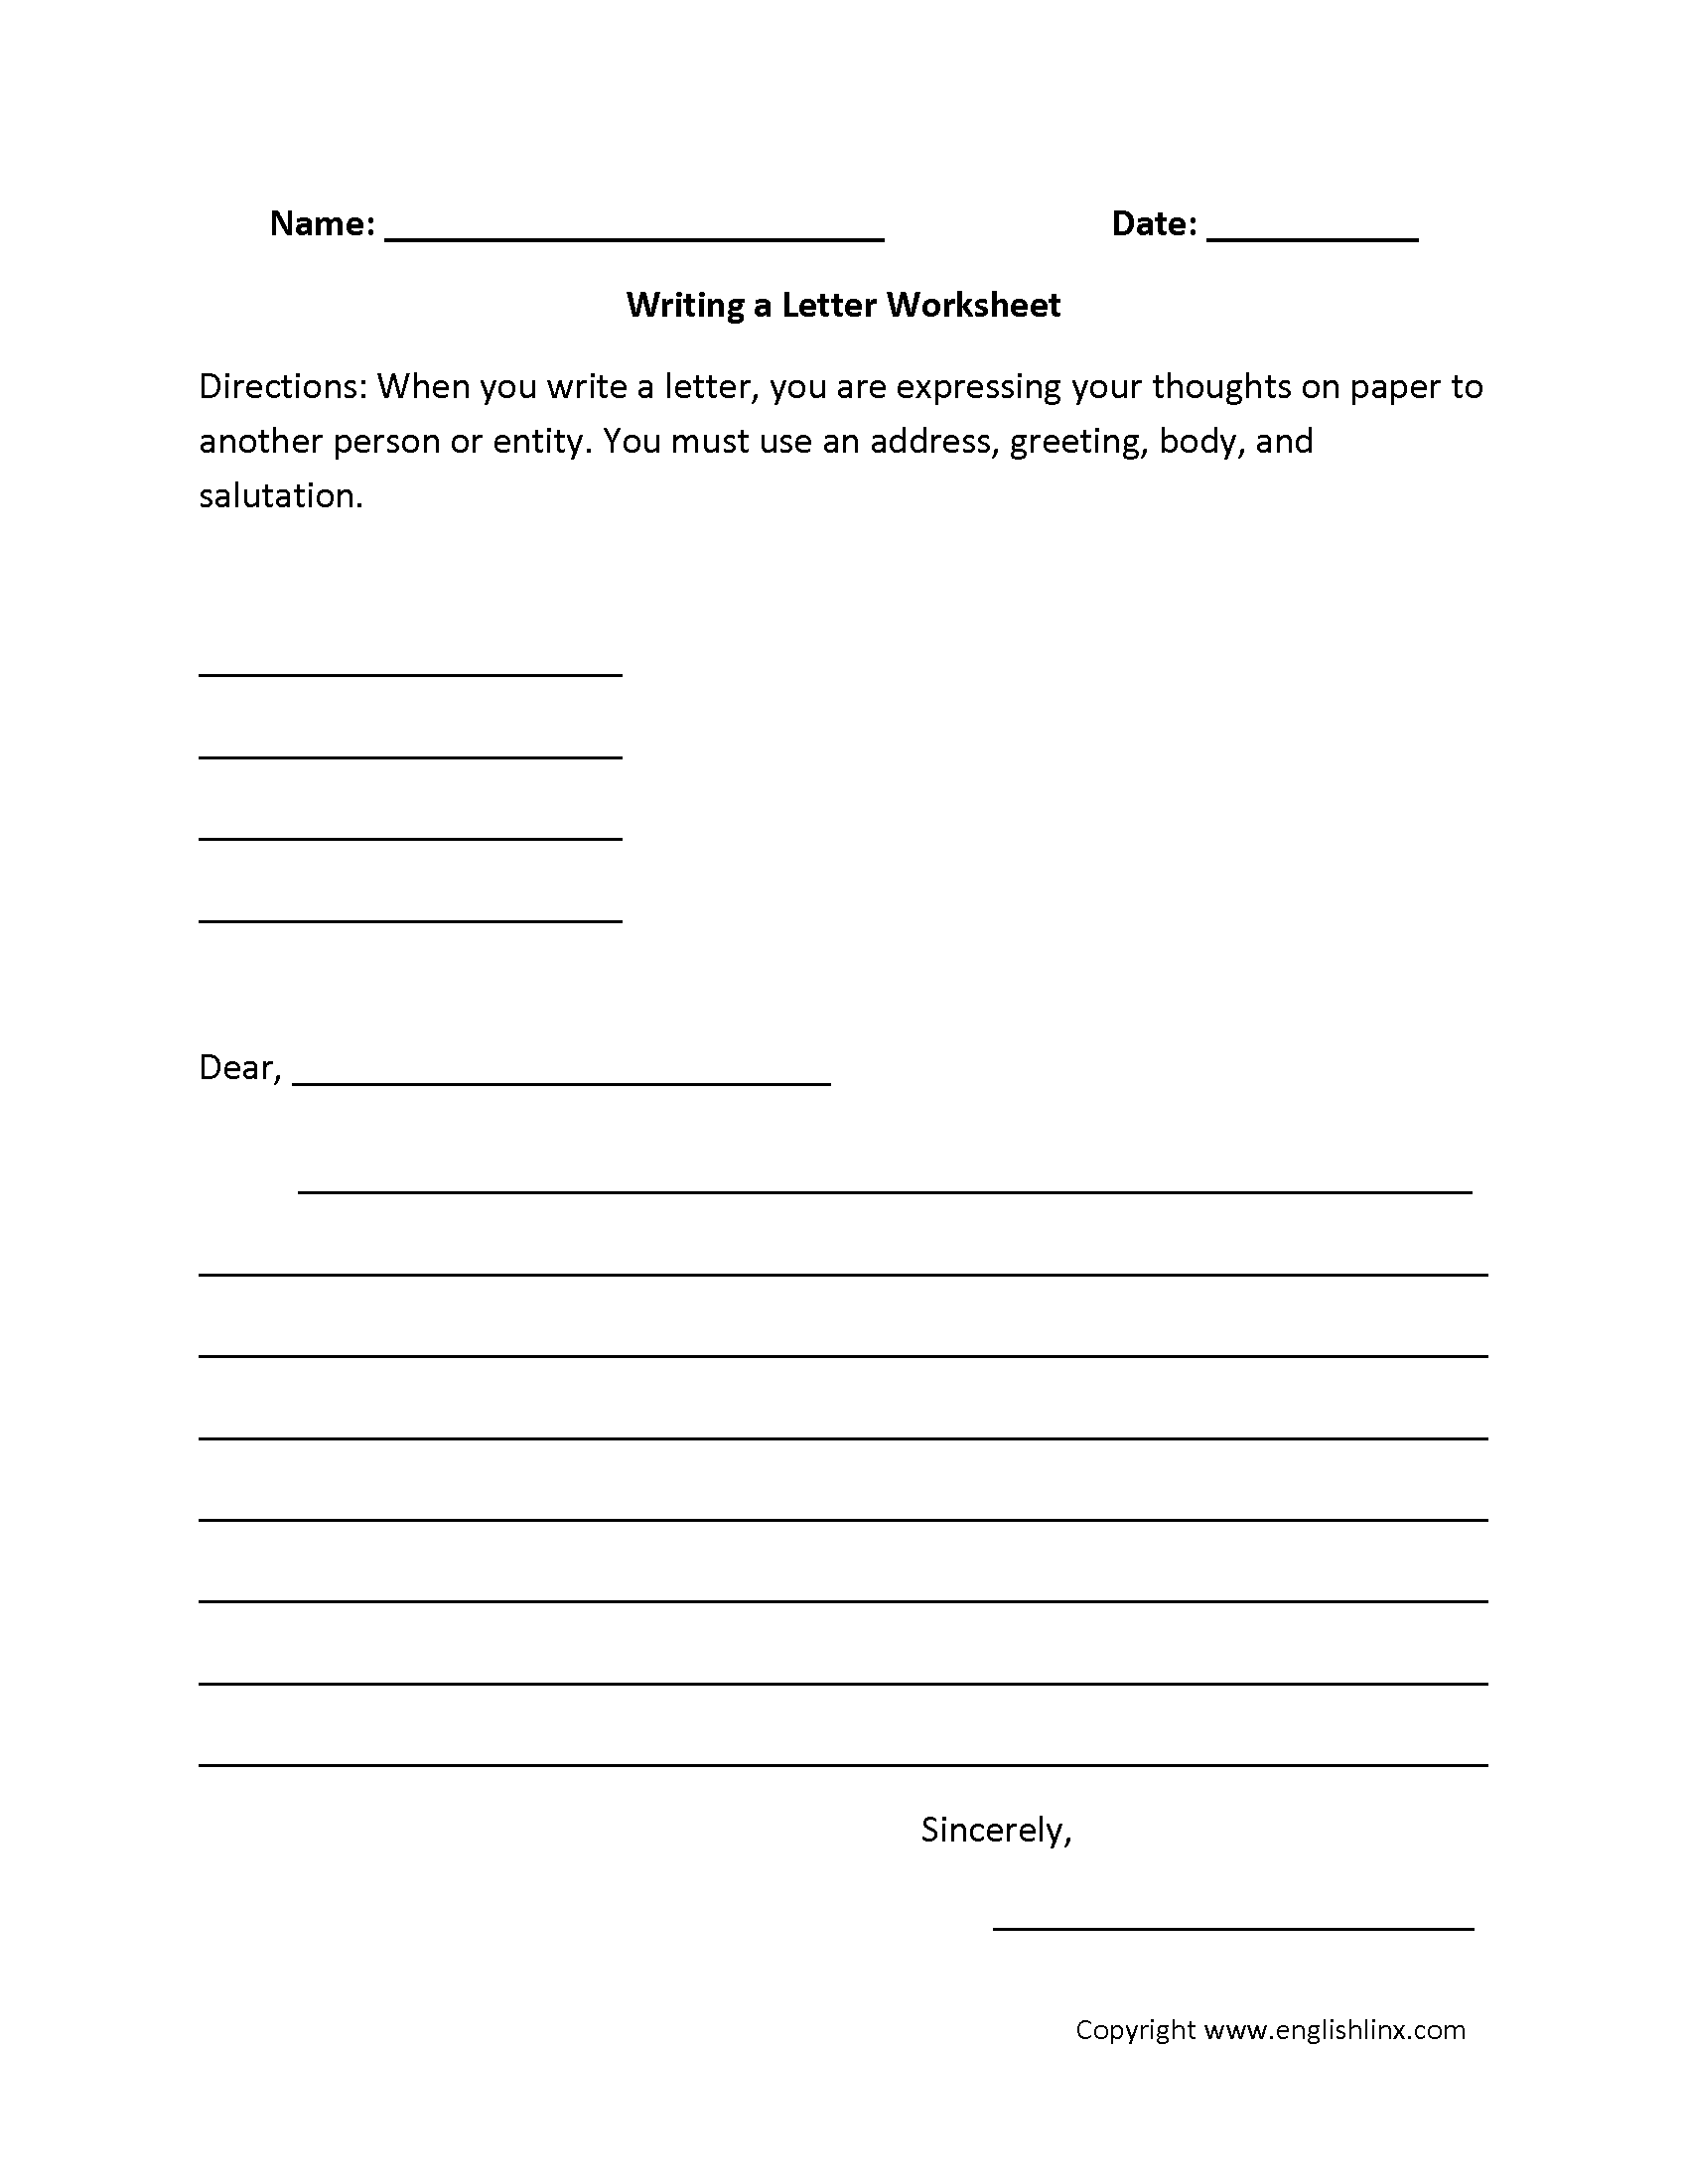 Worksheet Writing Worksheets For 1st Grade Grass Fedjp